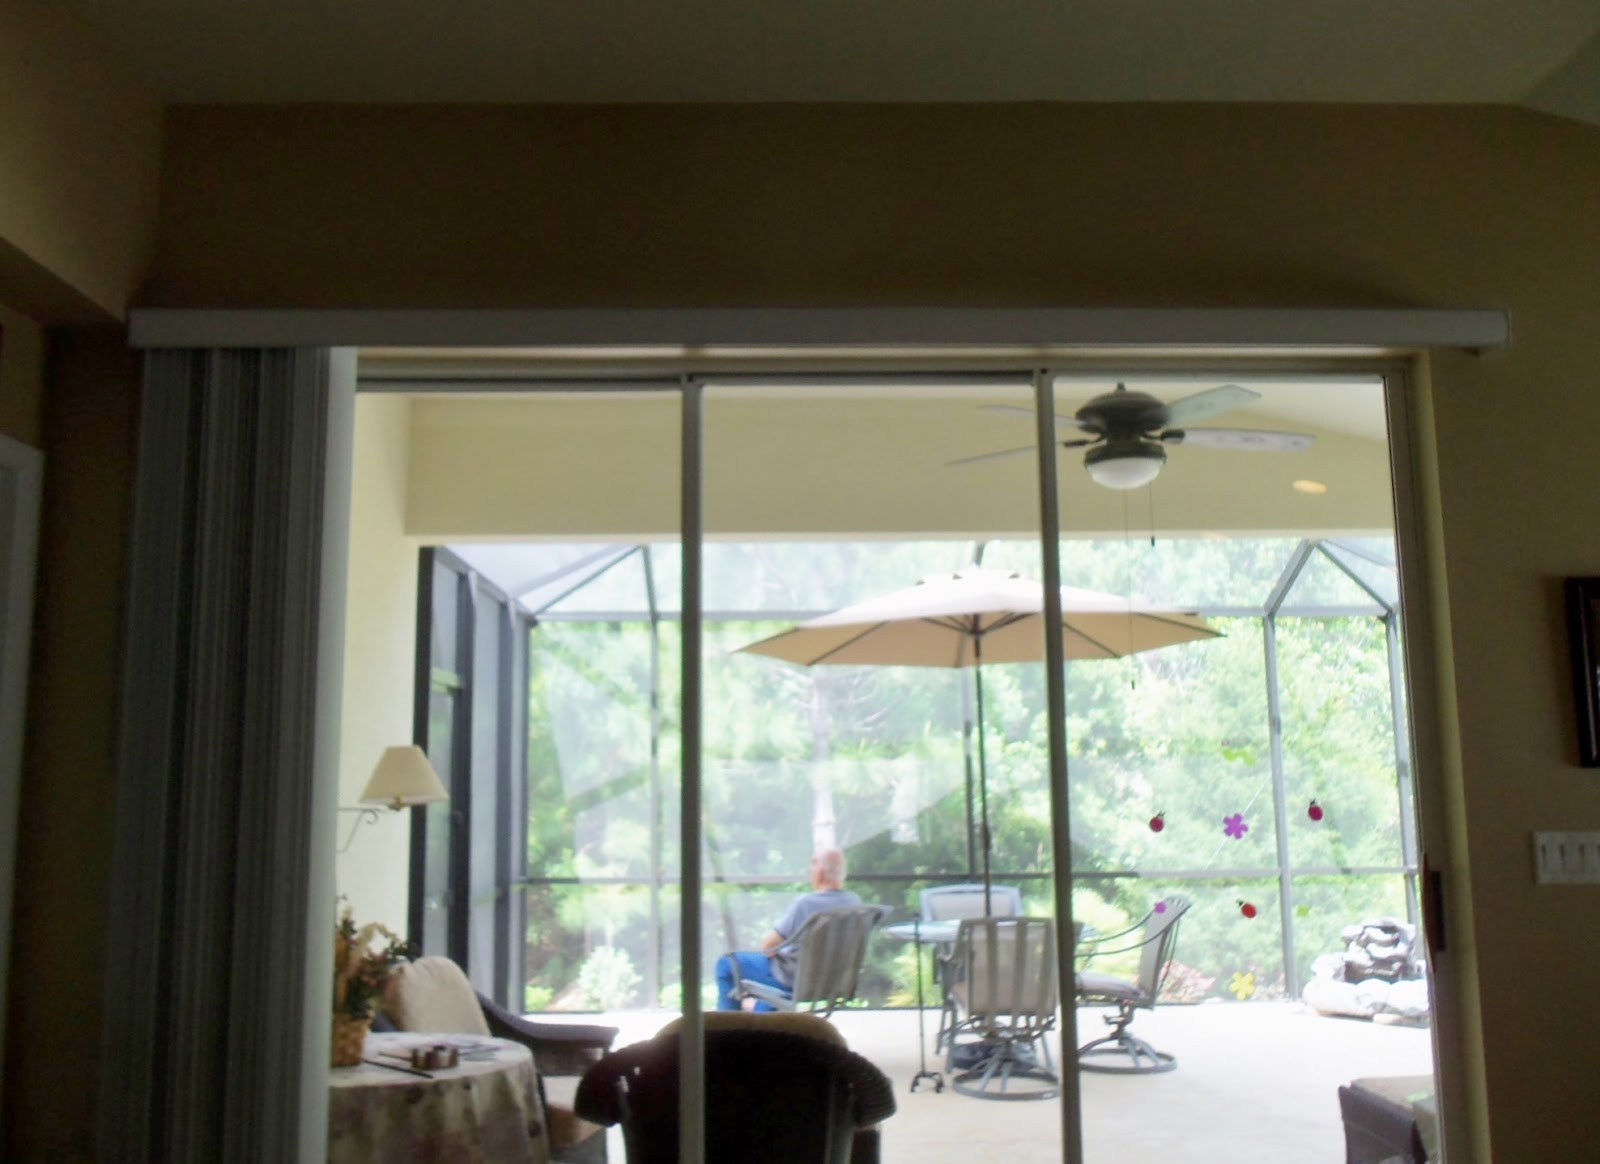 Making your home sing a new window treatment transforms a Latest window treatments